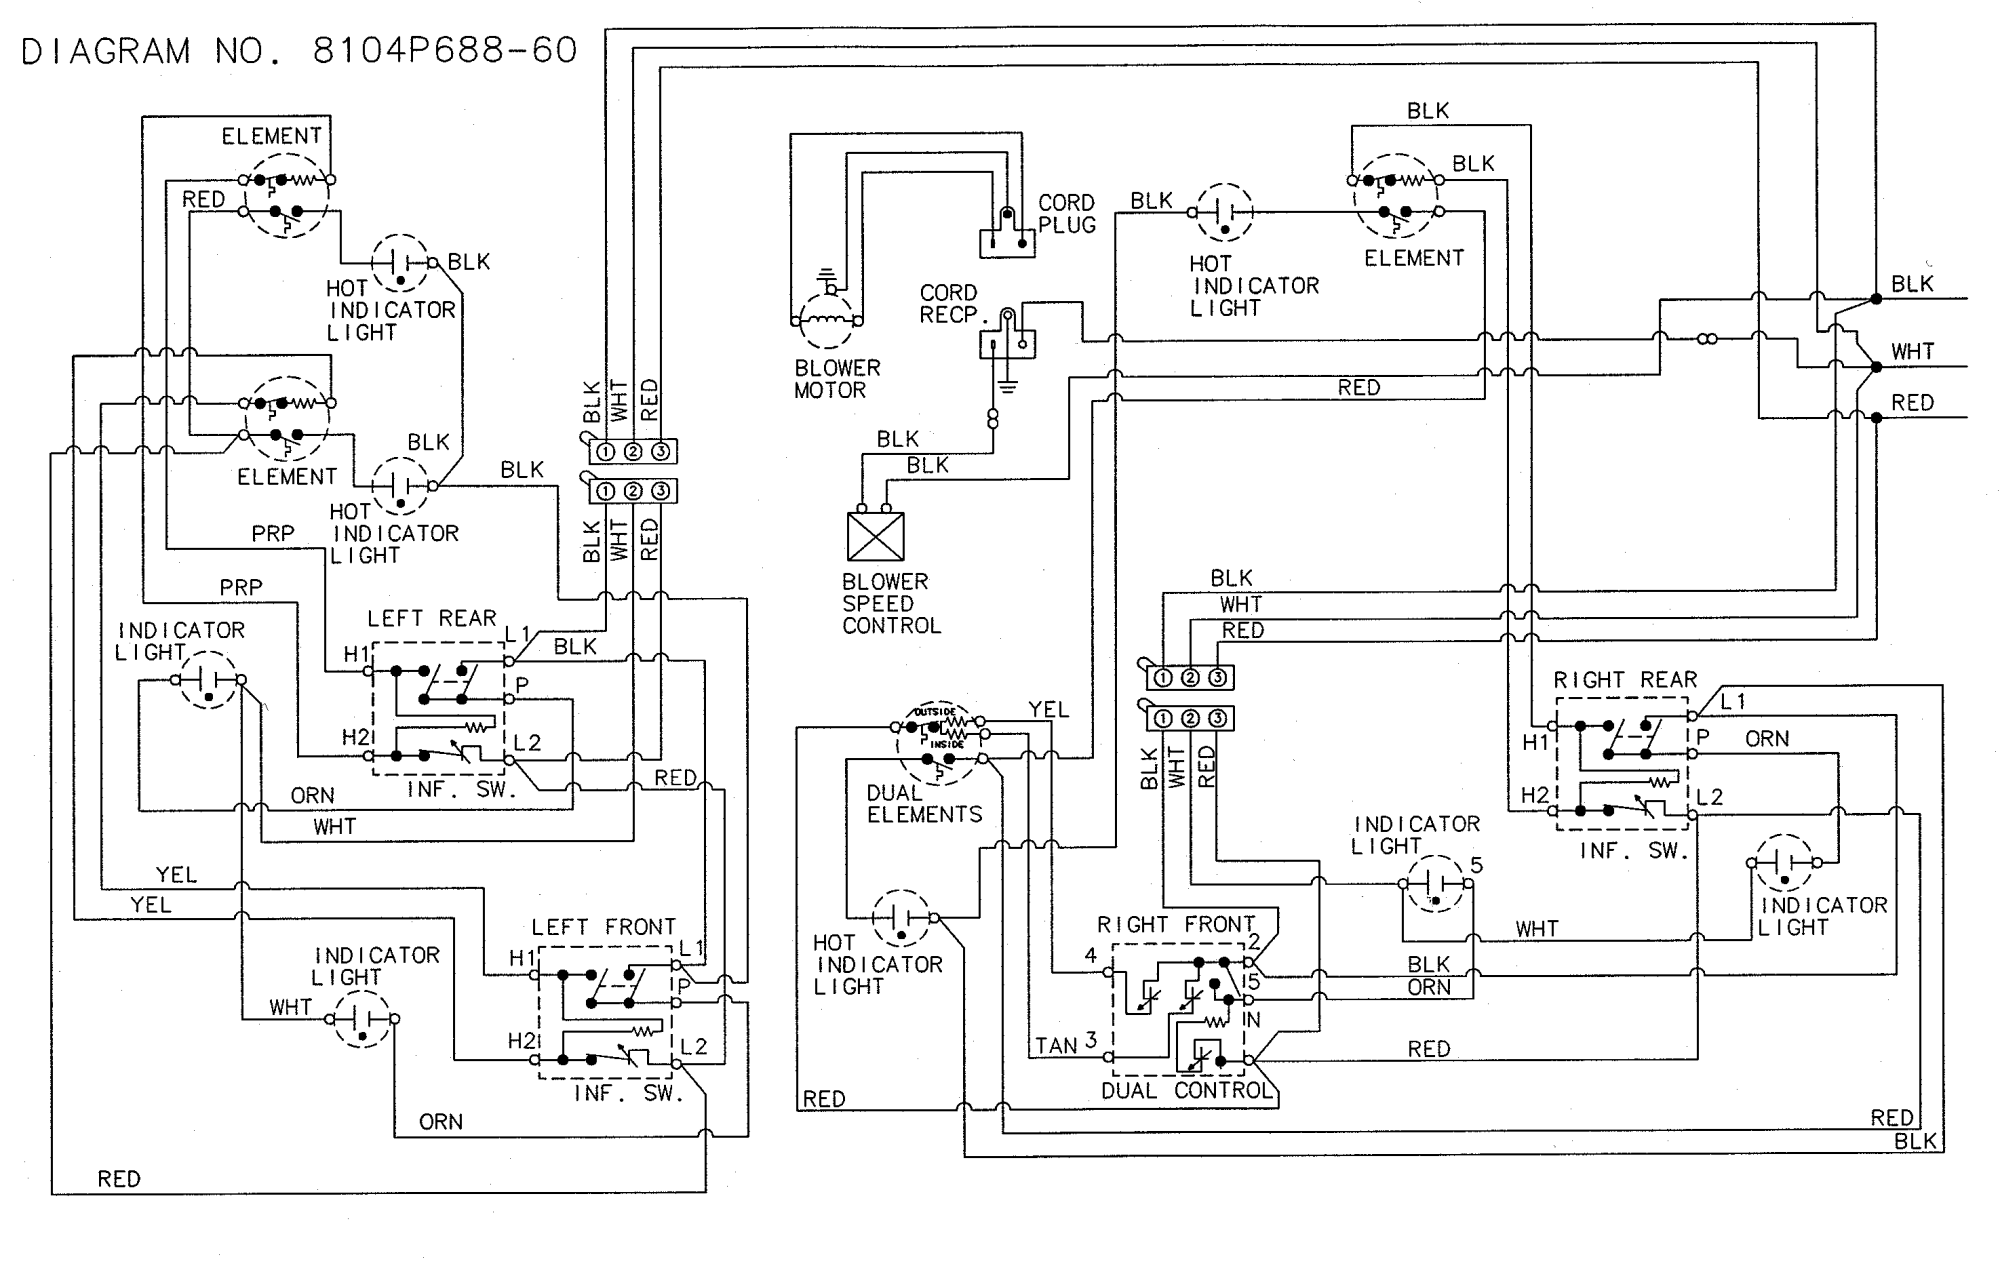 hight resolution of vrcd sdu wiring diagram wiring diagram and hernes 1990 mazda mpv fuse box diagram trailer wiring wiring diagram for kawasaki mule